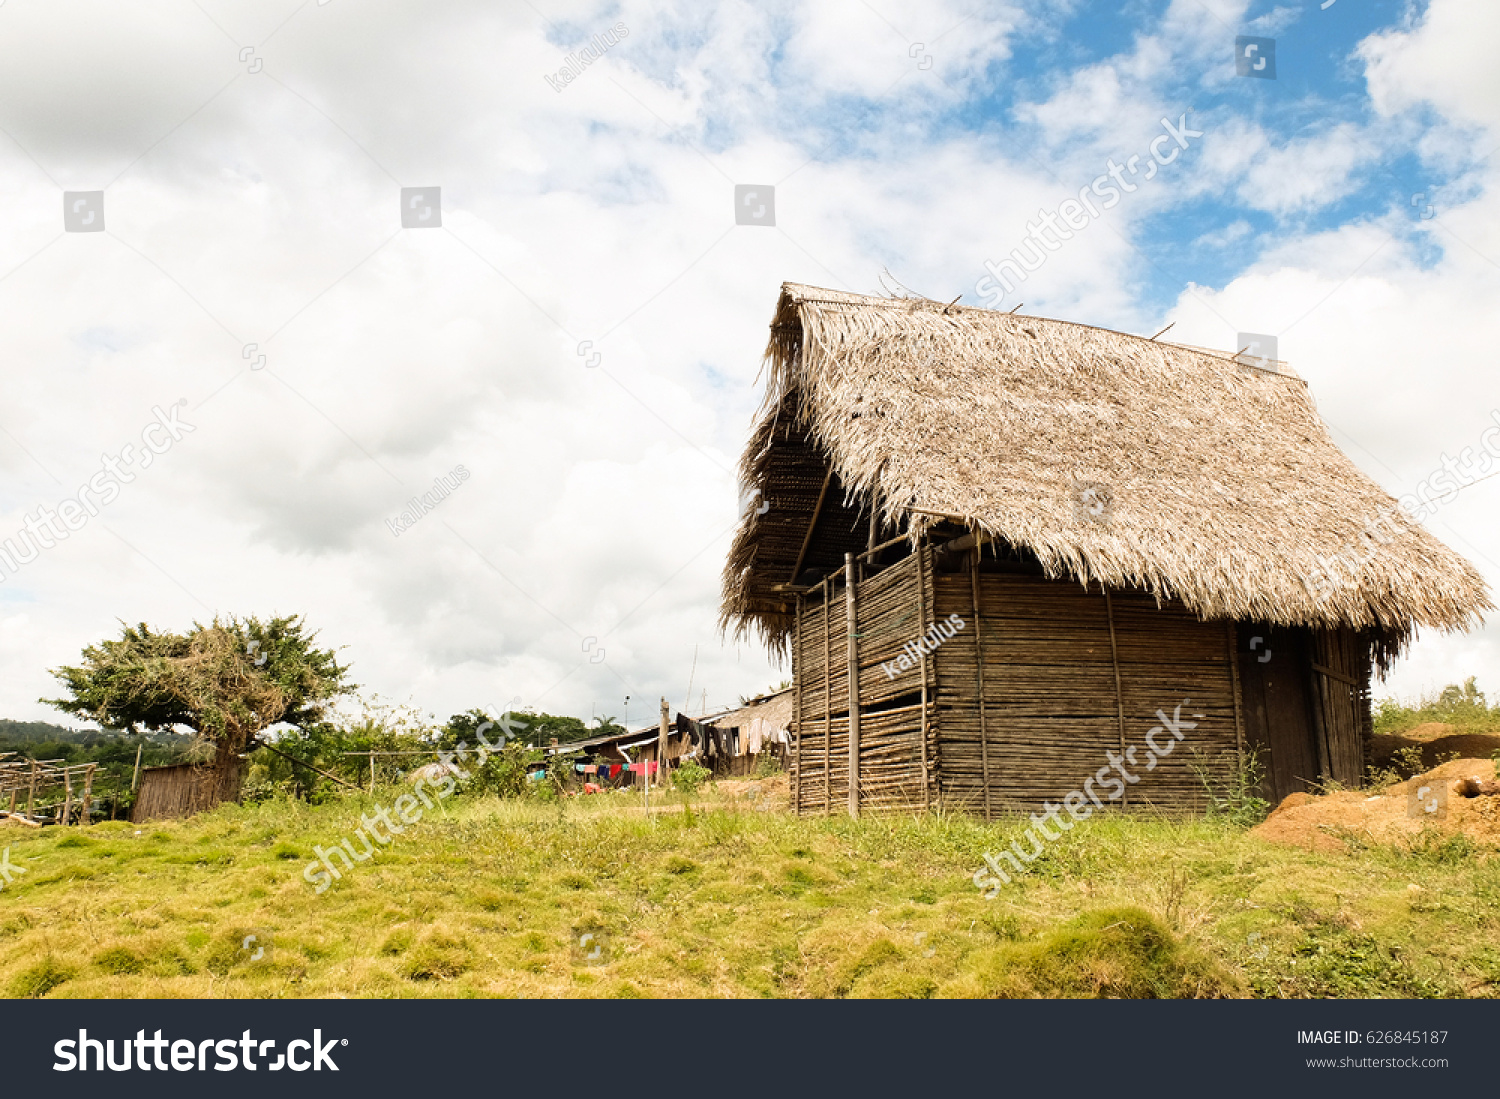 Wood And Straw House In The Village